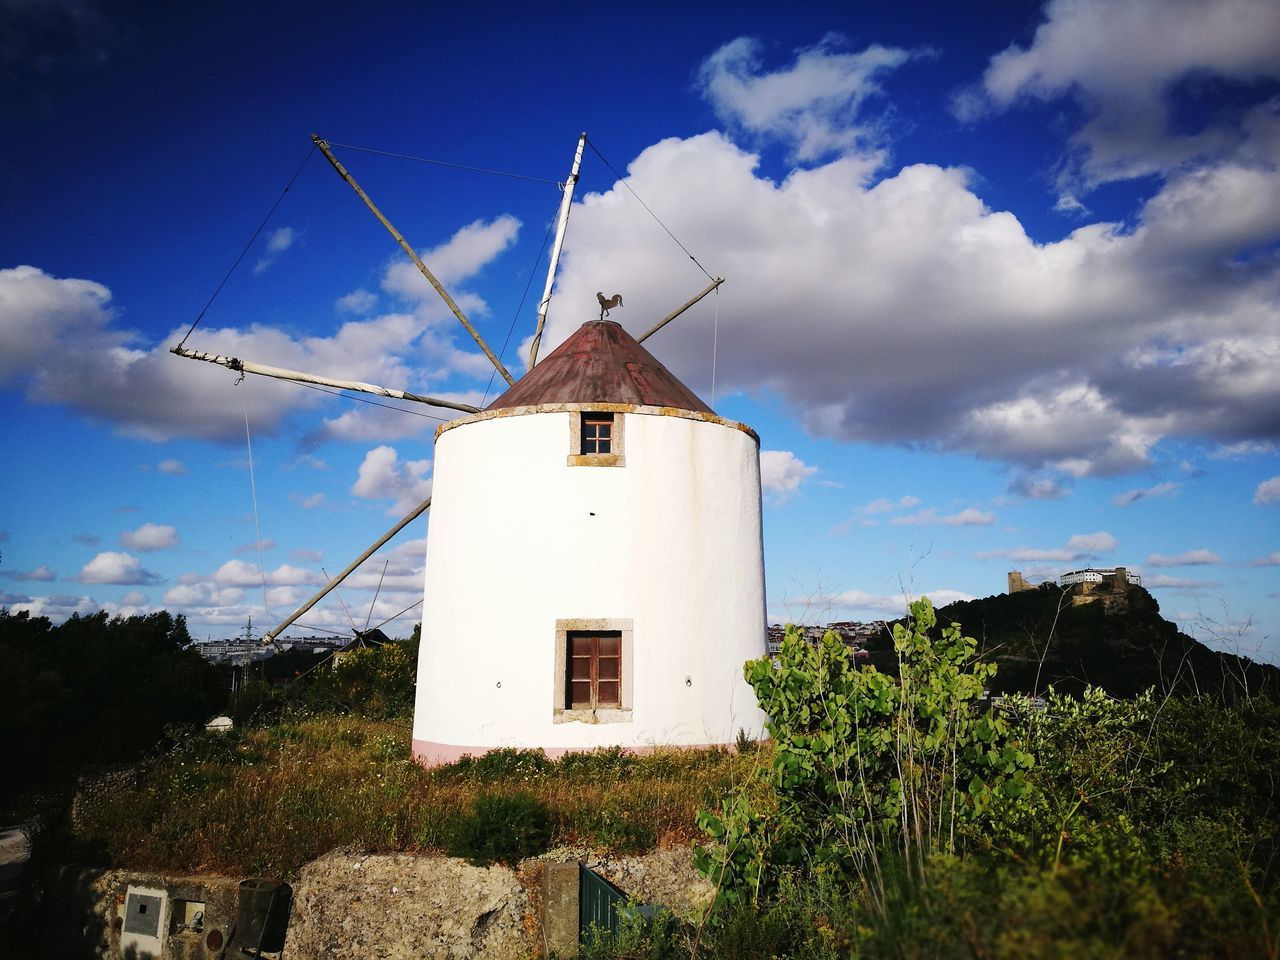 Windmill Wind Power Traditional Windmill Alternative Energy Architecture Sky Built Structure Wind Outdoors Cloud - Sky Day No People Nature Rural Scene